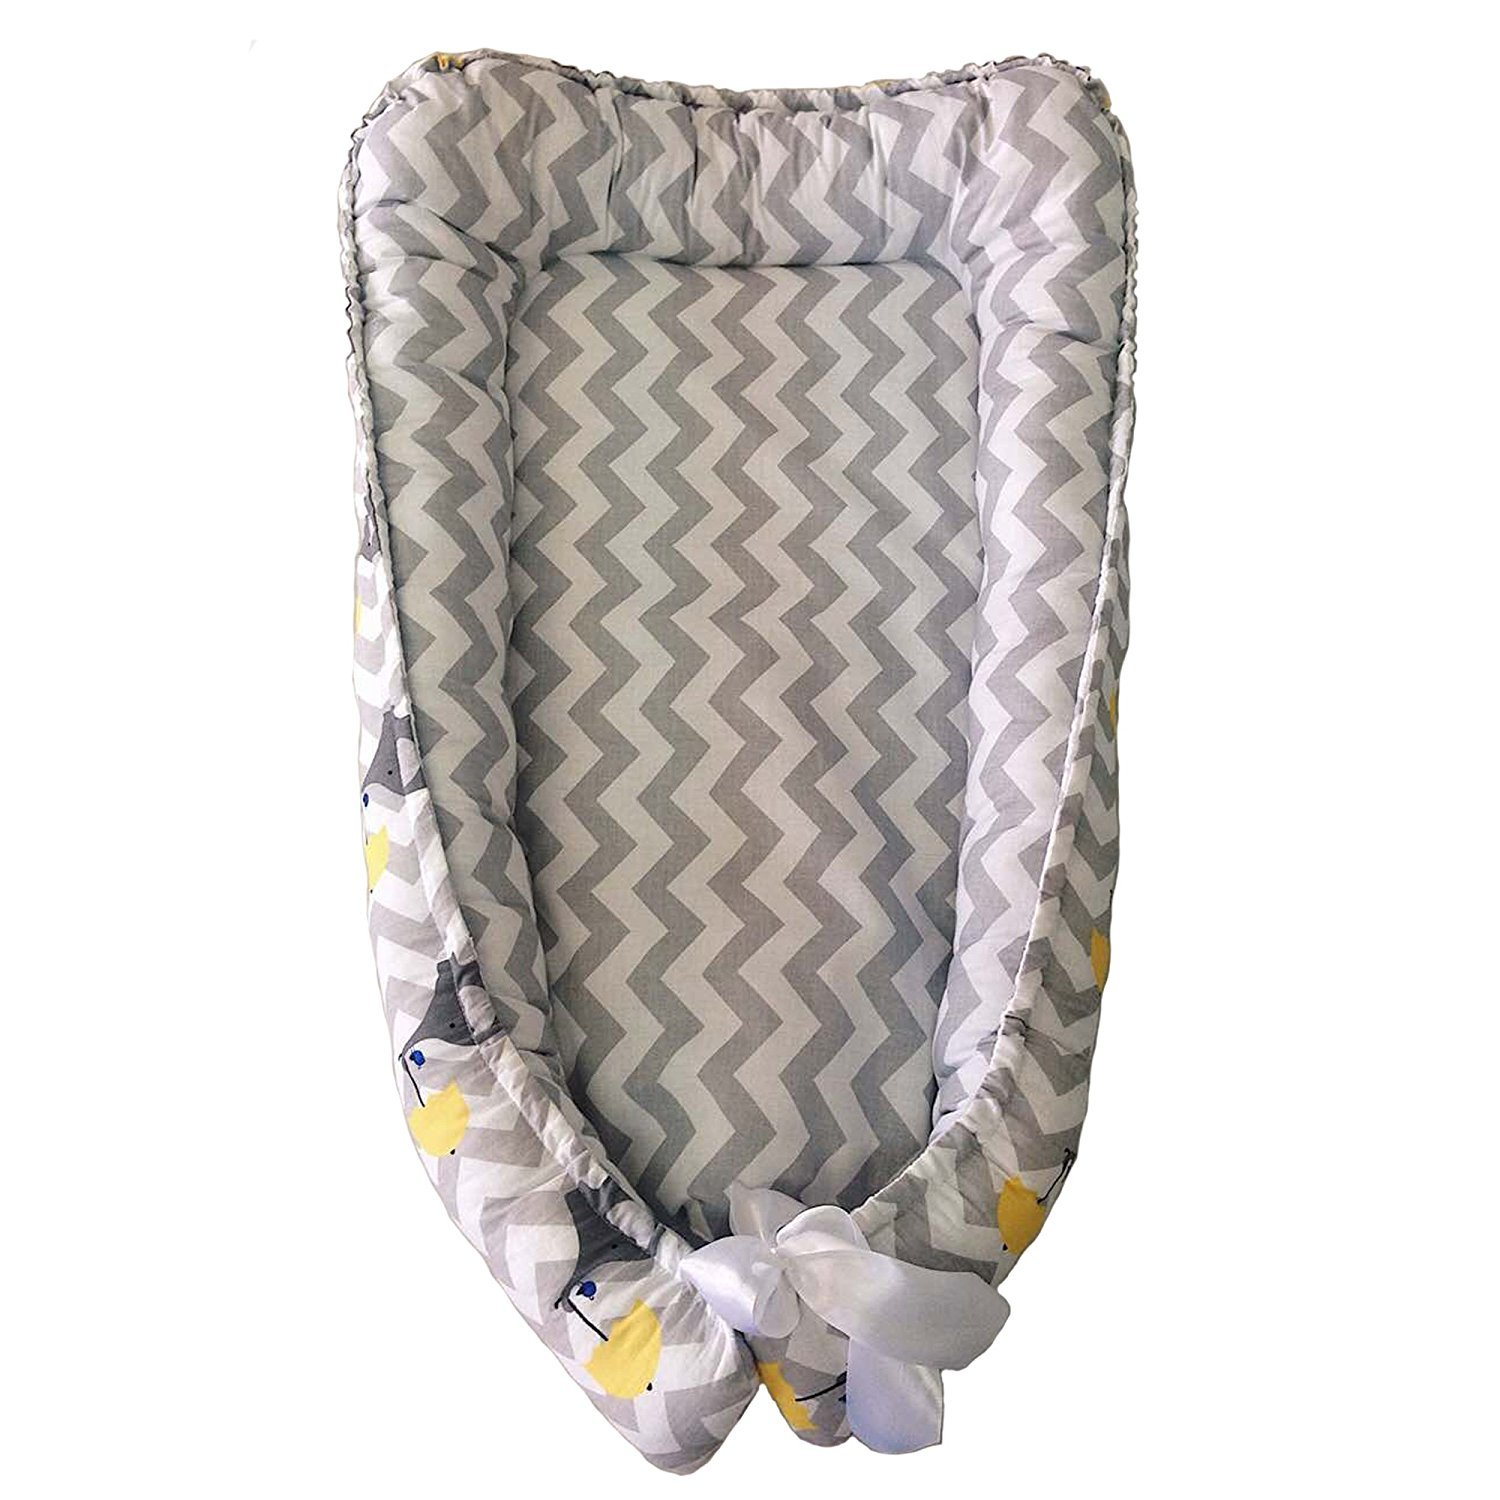 Baby Nest, Gray Nest for Newborn, Sleep Bed, Cocoon-cradle, baby sleep nest melomashka